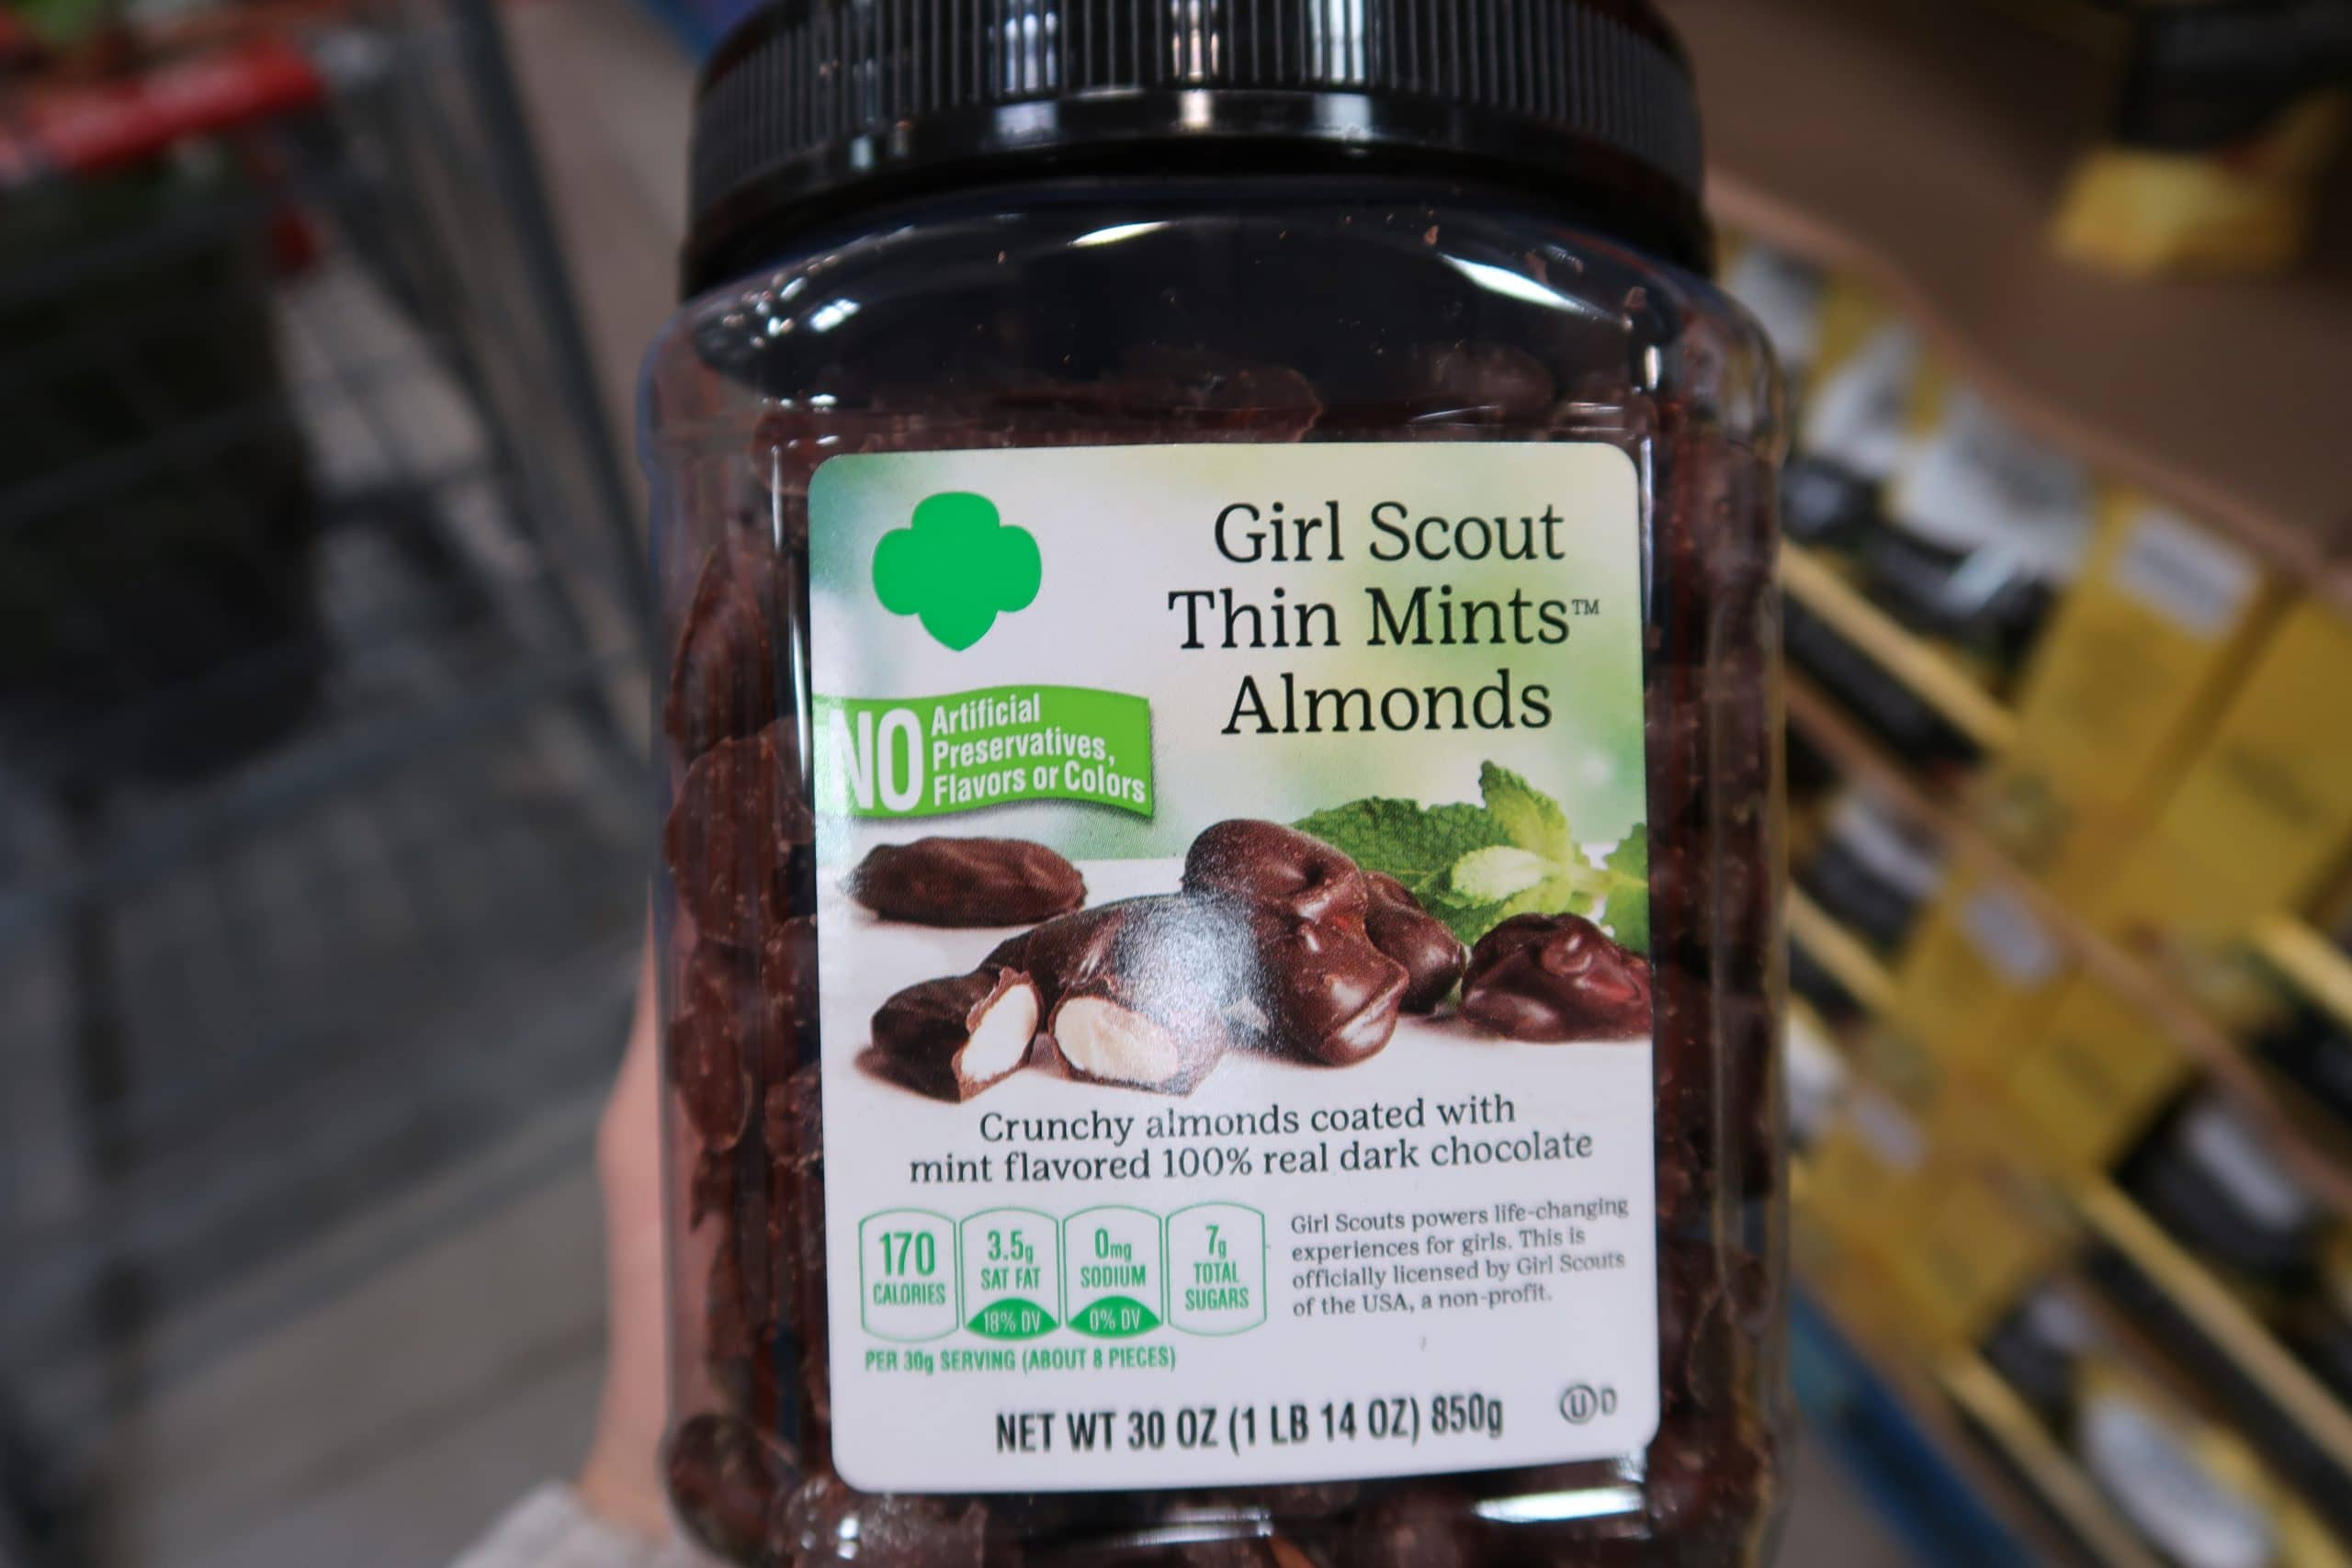 Girl Scout Thin Mints Almonds $12.99!